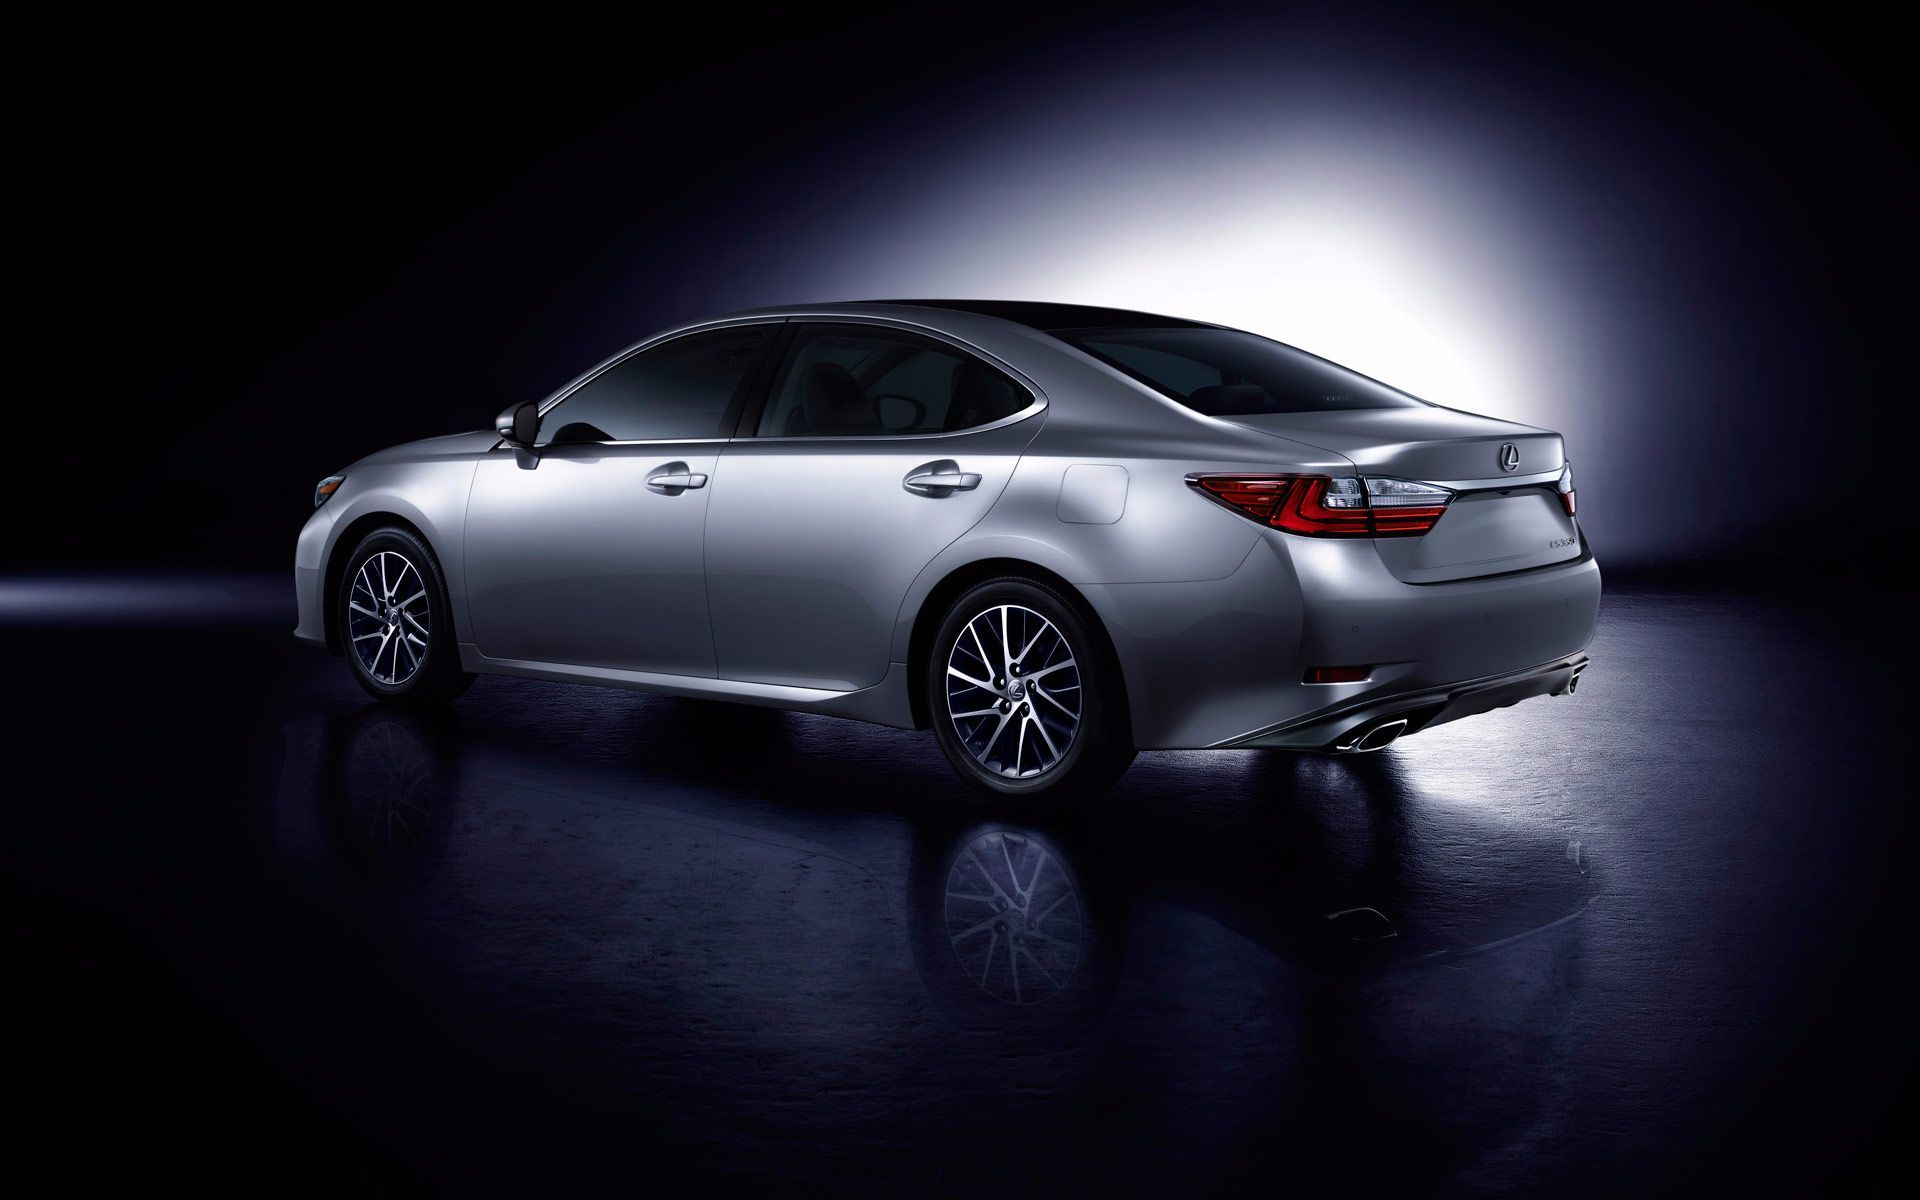 2016 Lexus ES a Stylish Sedan by Mierins Automotive Group in